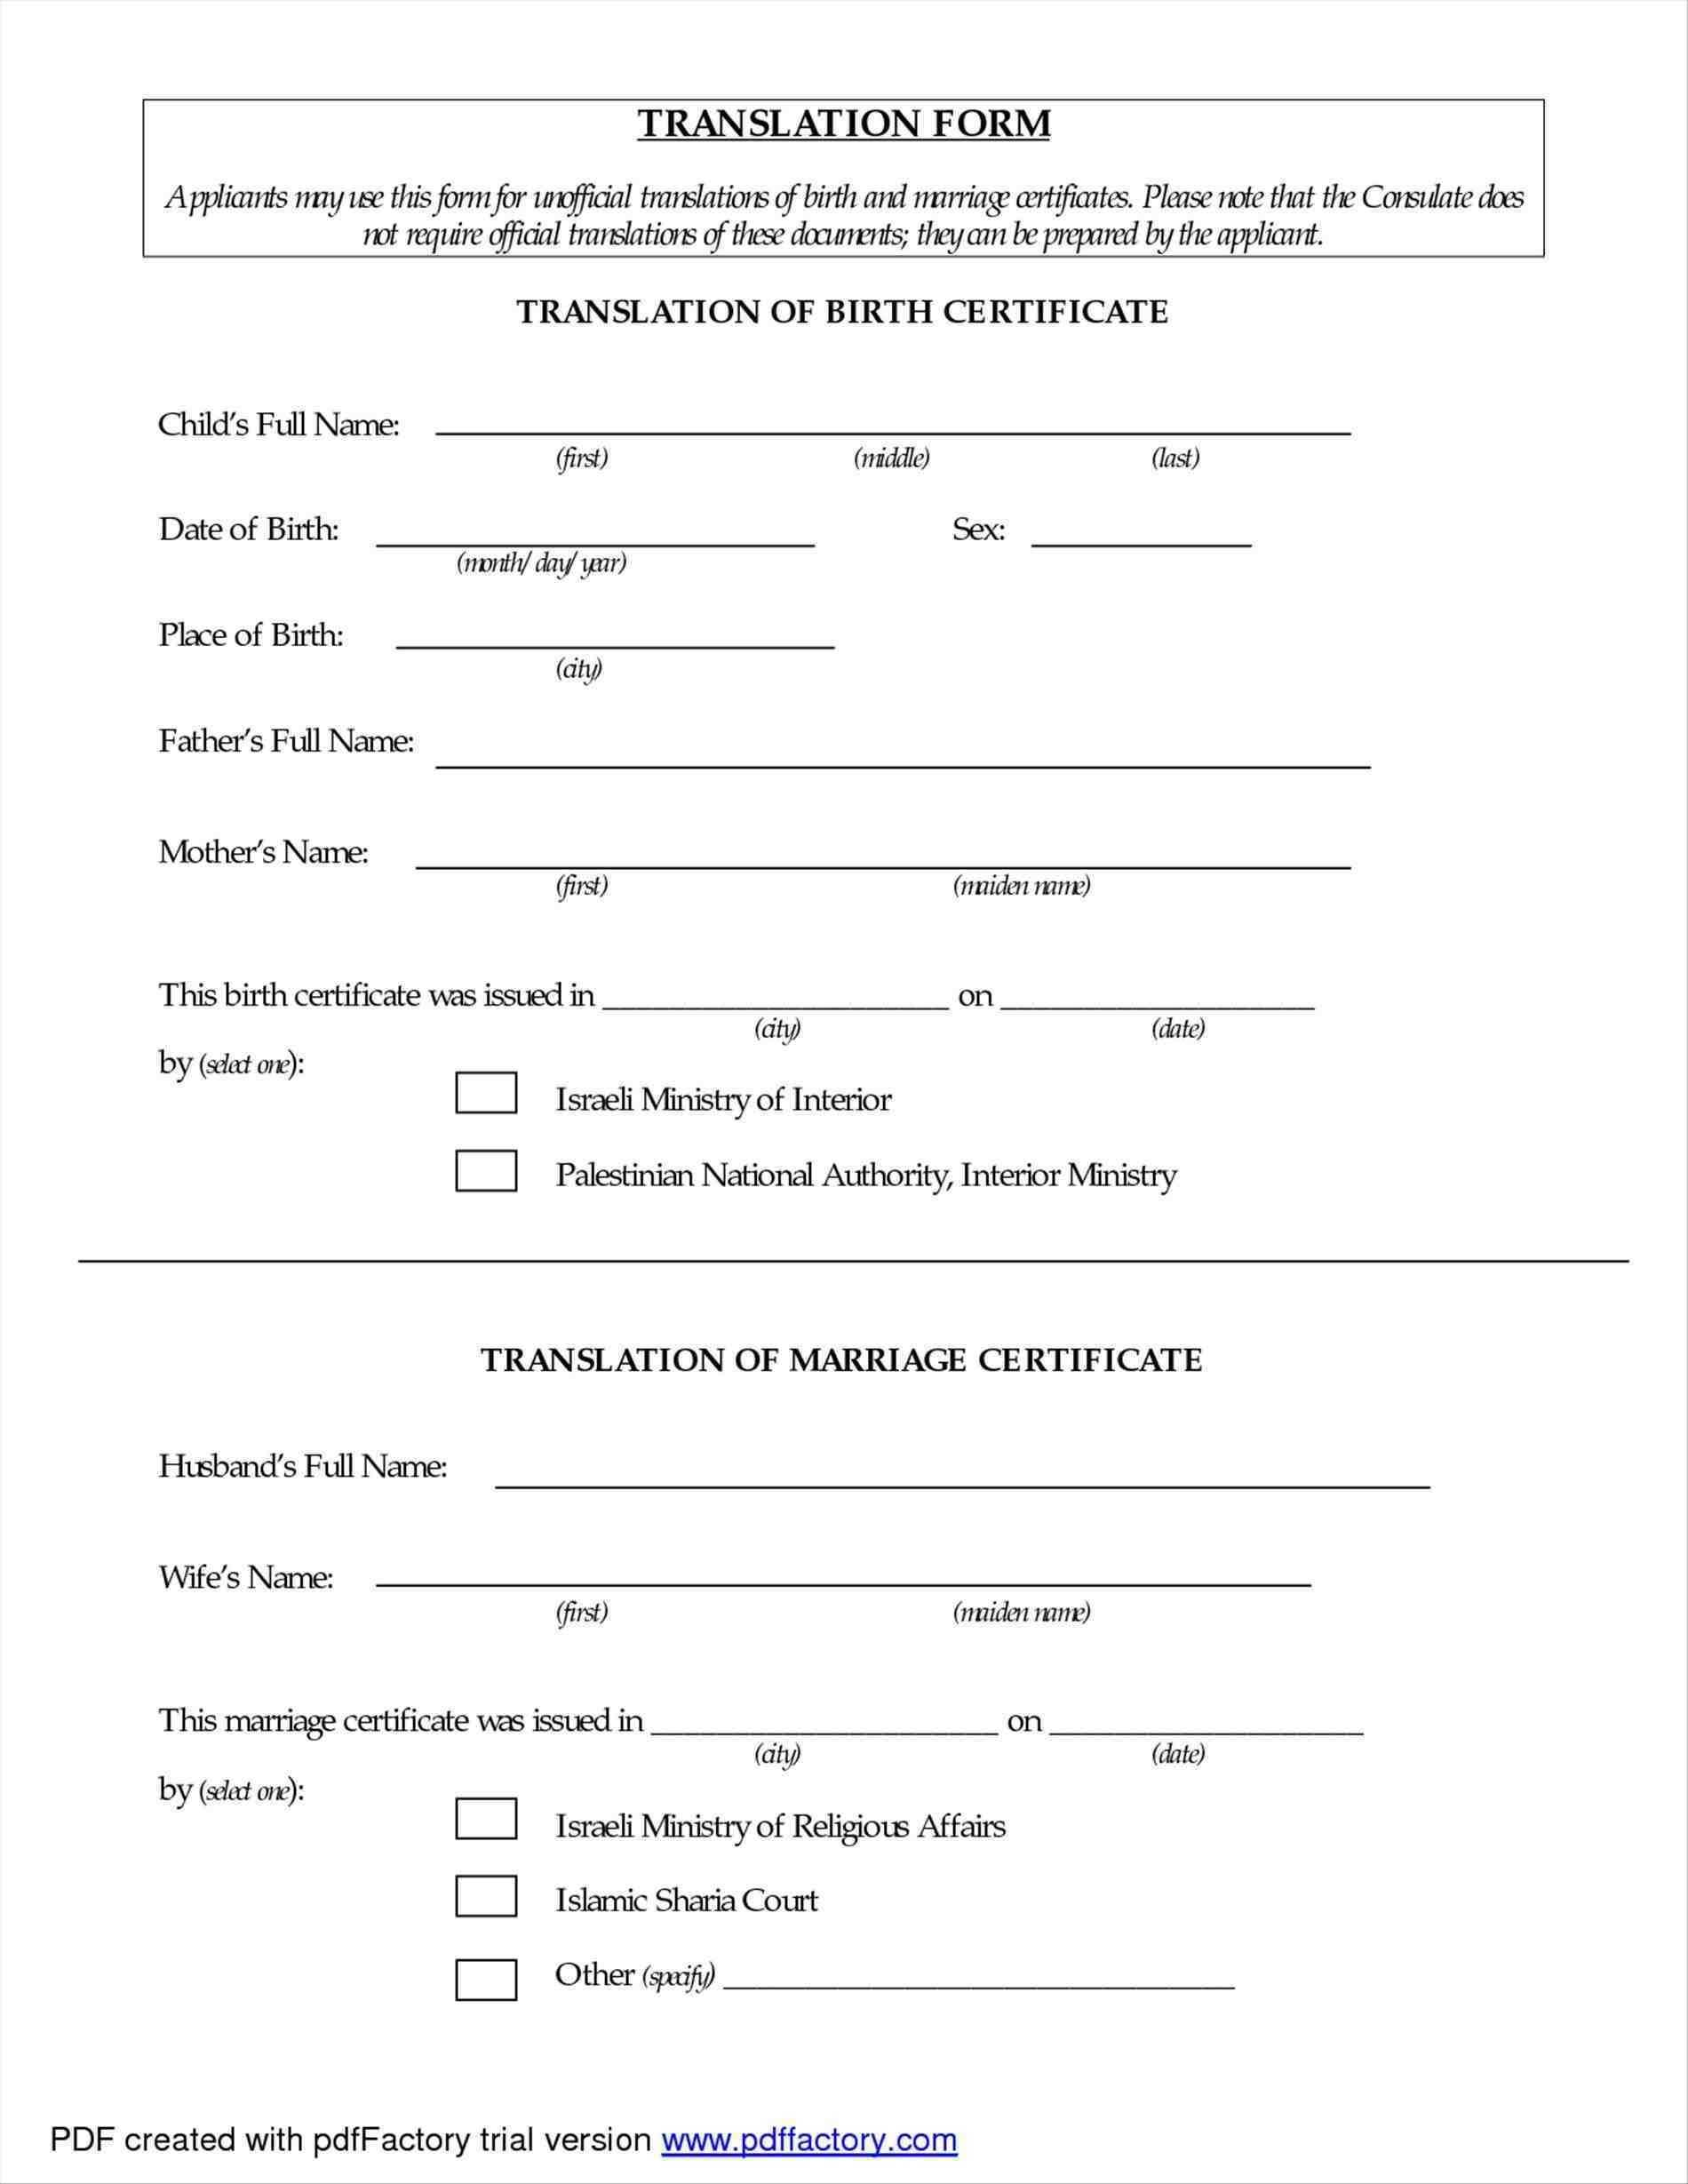 Mexican Marriage Certificate Template Brochure Templates Within Marriage Certificate Translation From Spanish To English Template